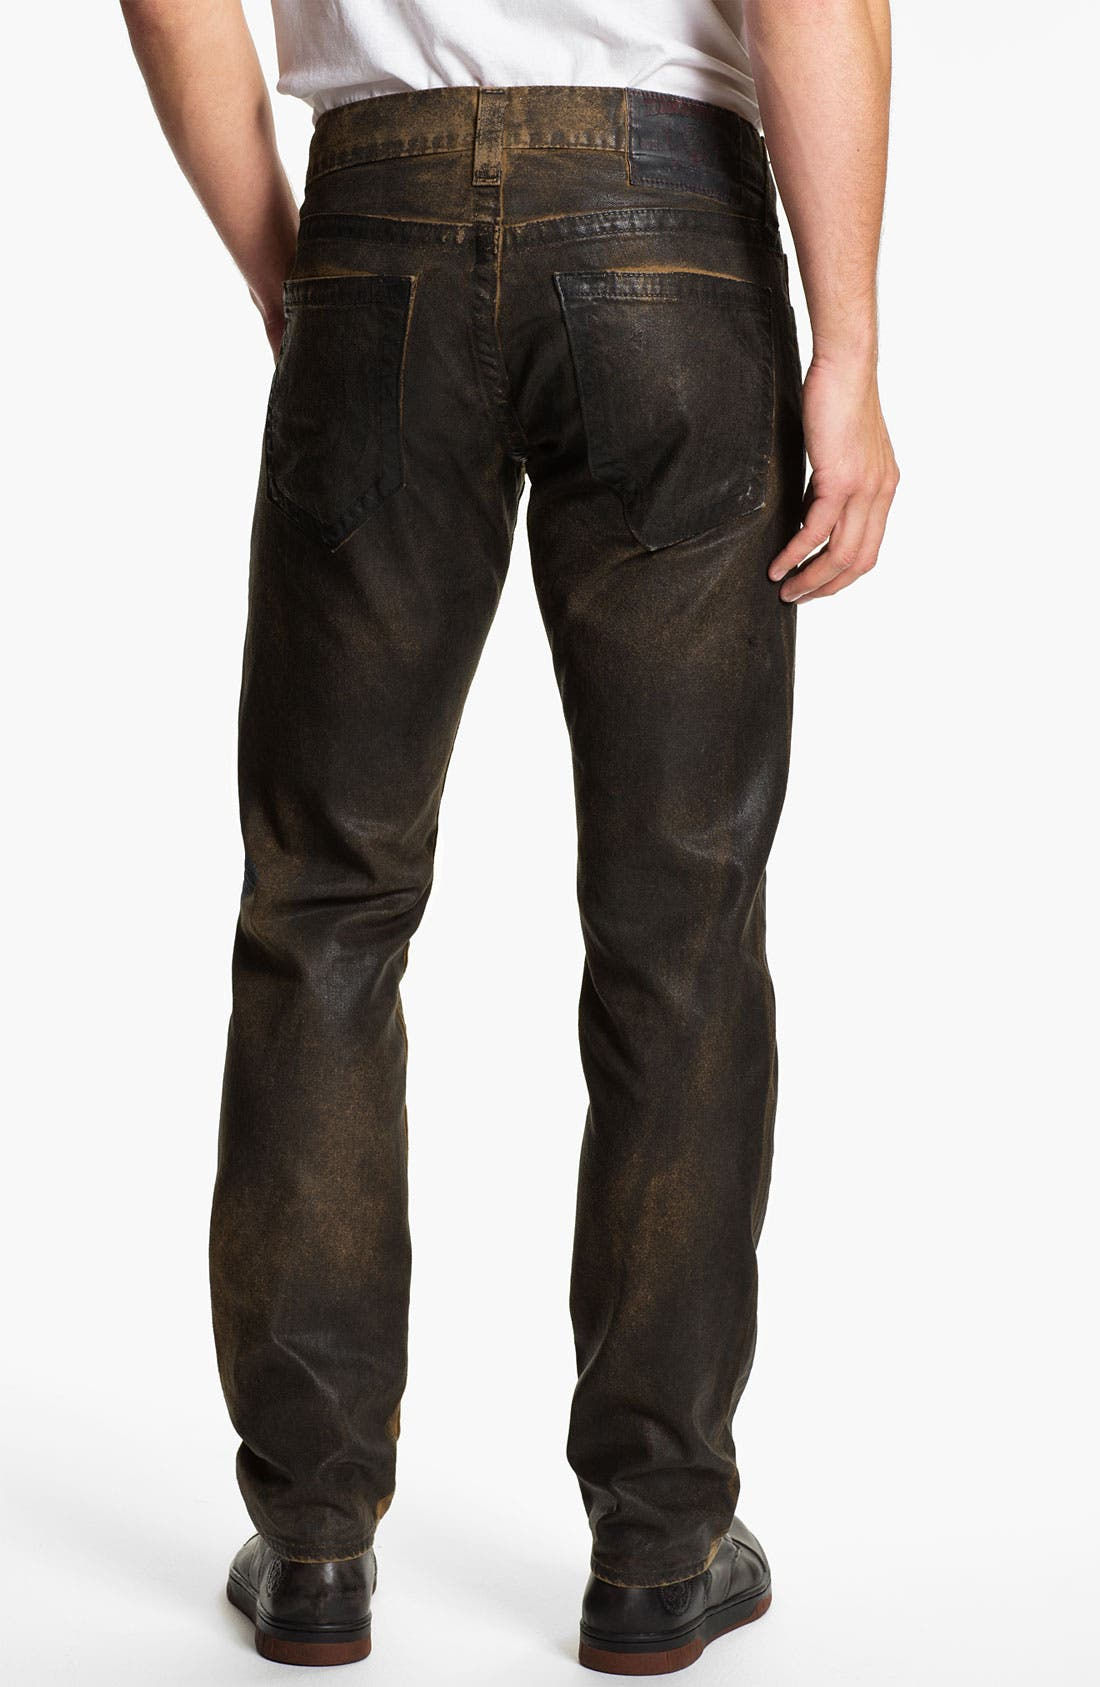 Alternate Image 1 Selected - True Religion Brand Jeans 'Geno' Tapered Straight Leg Jeans (Crackle Coated Black Vintage)